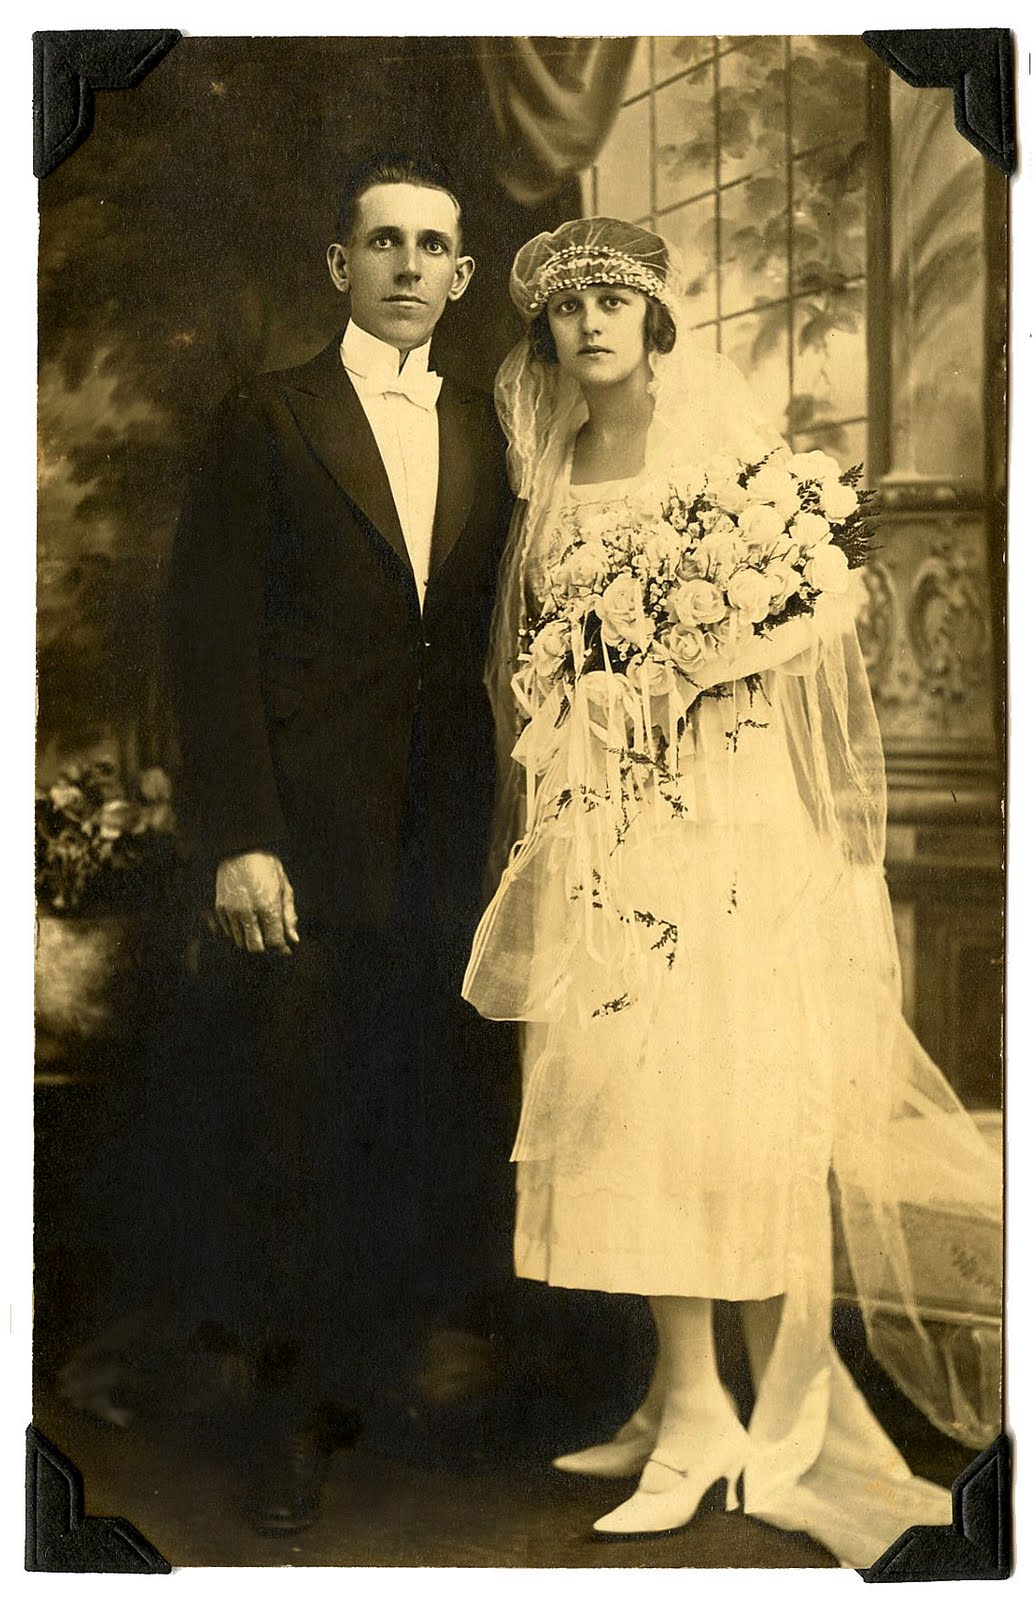 Vintage Photos - Brides and Grooms - The Graphics Fairy